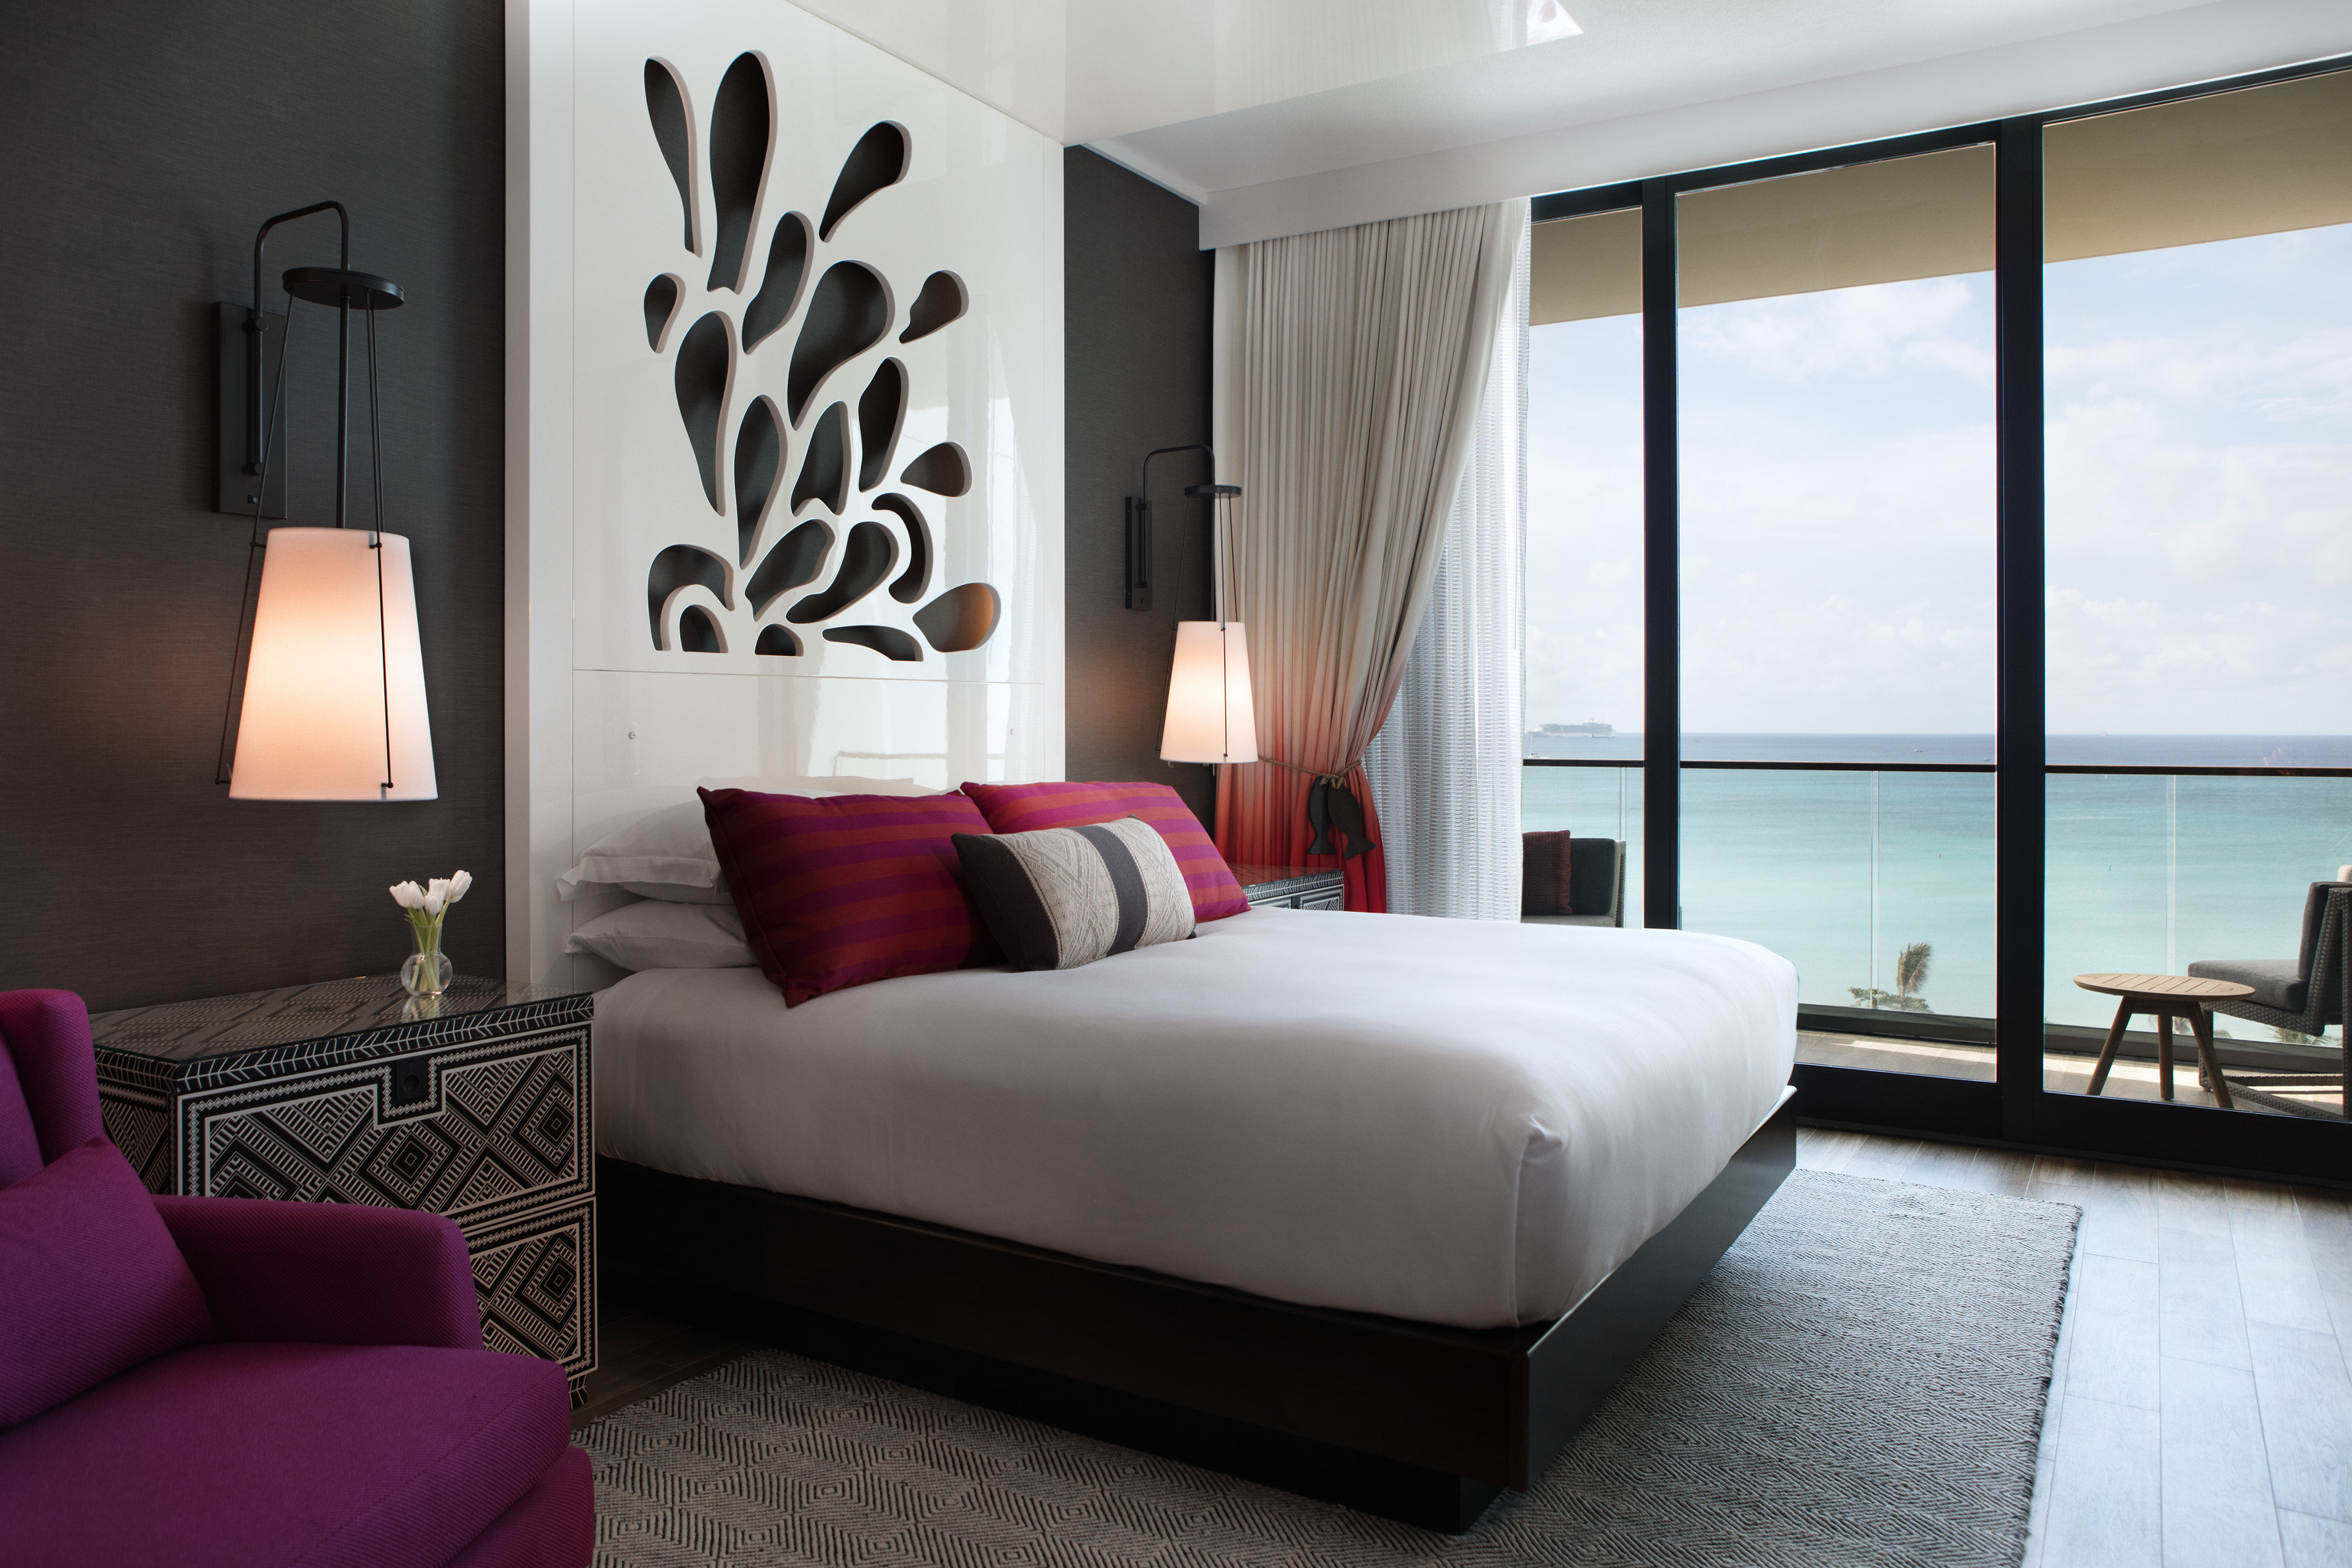 Hotels Trip Ideas indoor floor room sofa wall bed hotel window property Bedroom living room Suite interior design home nice furniture condominium real estate Design estate apartment area flat